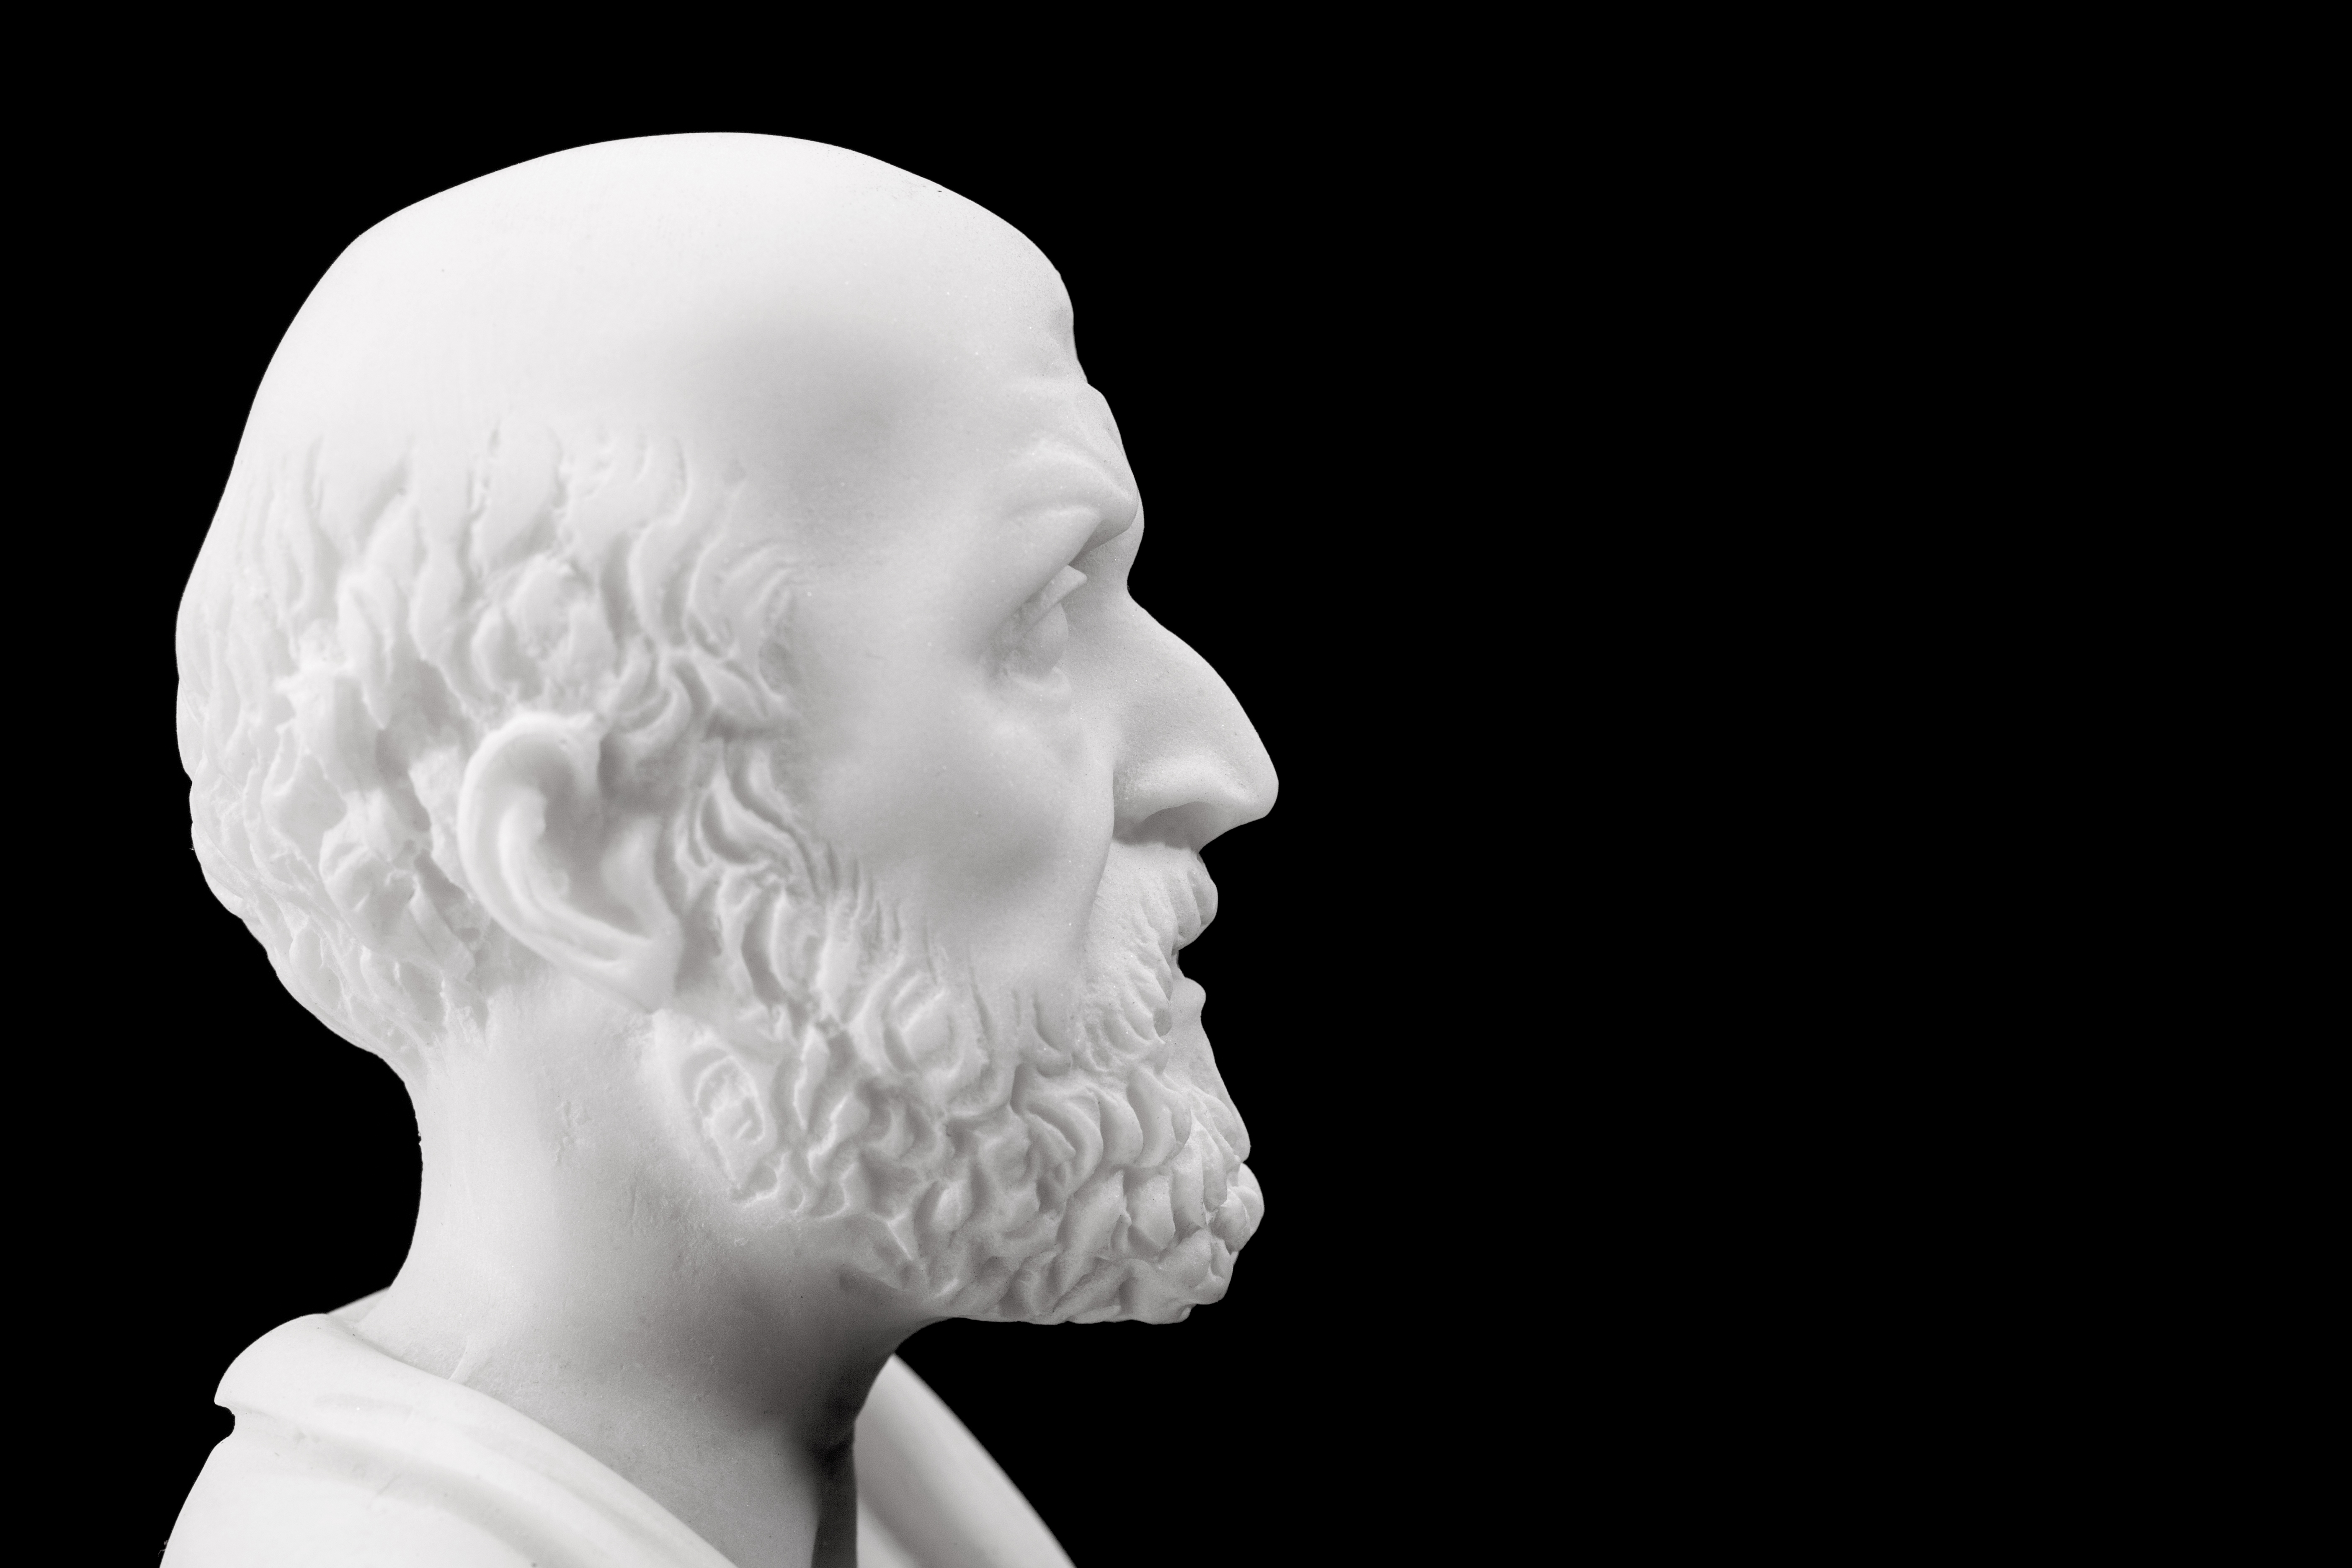 Bust of Hippocrates on black background